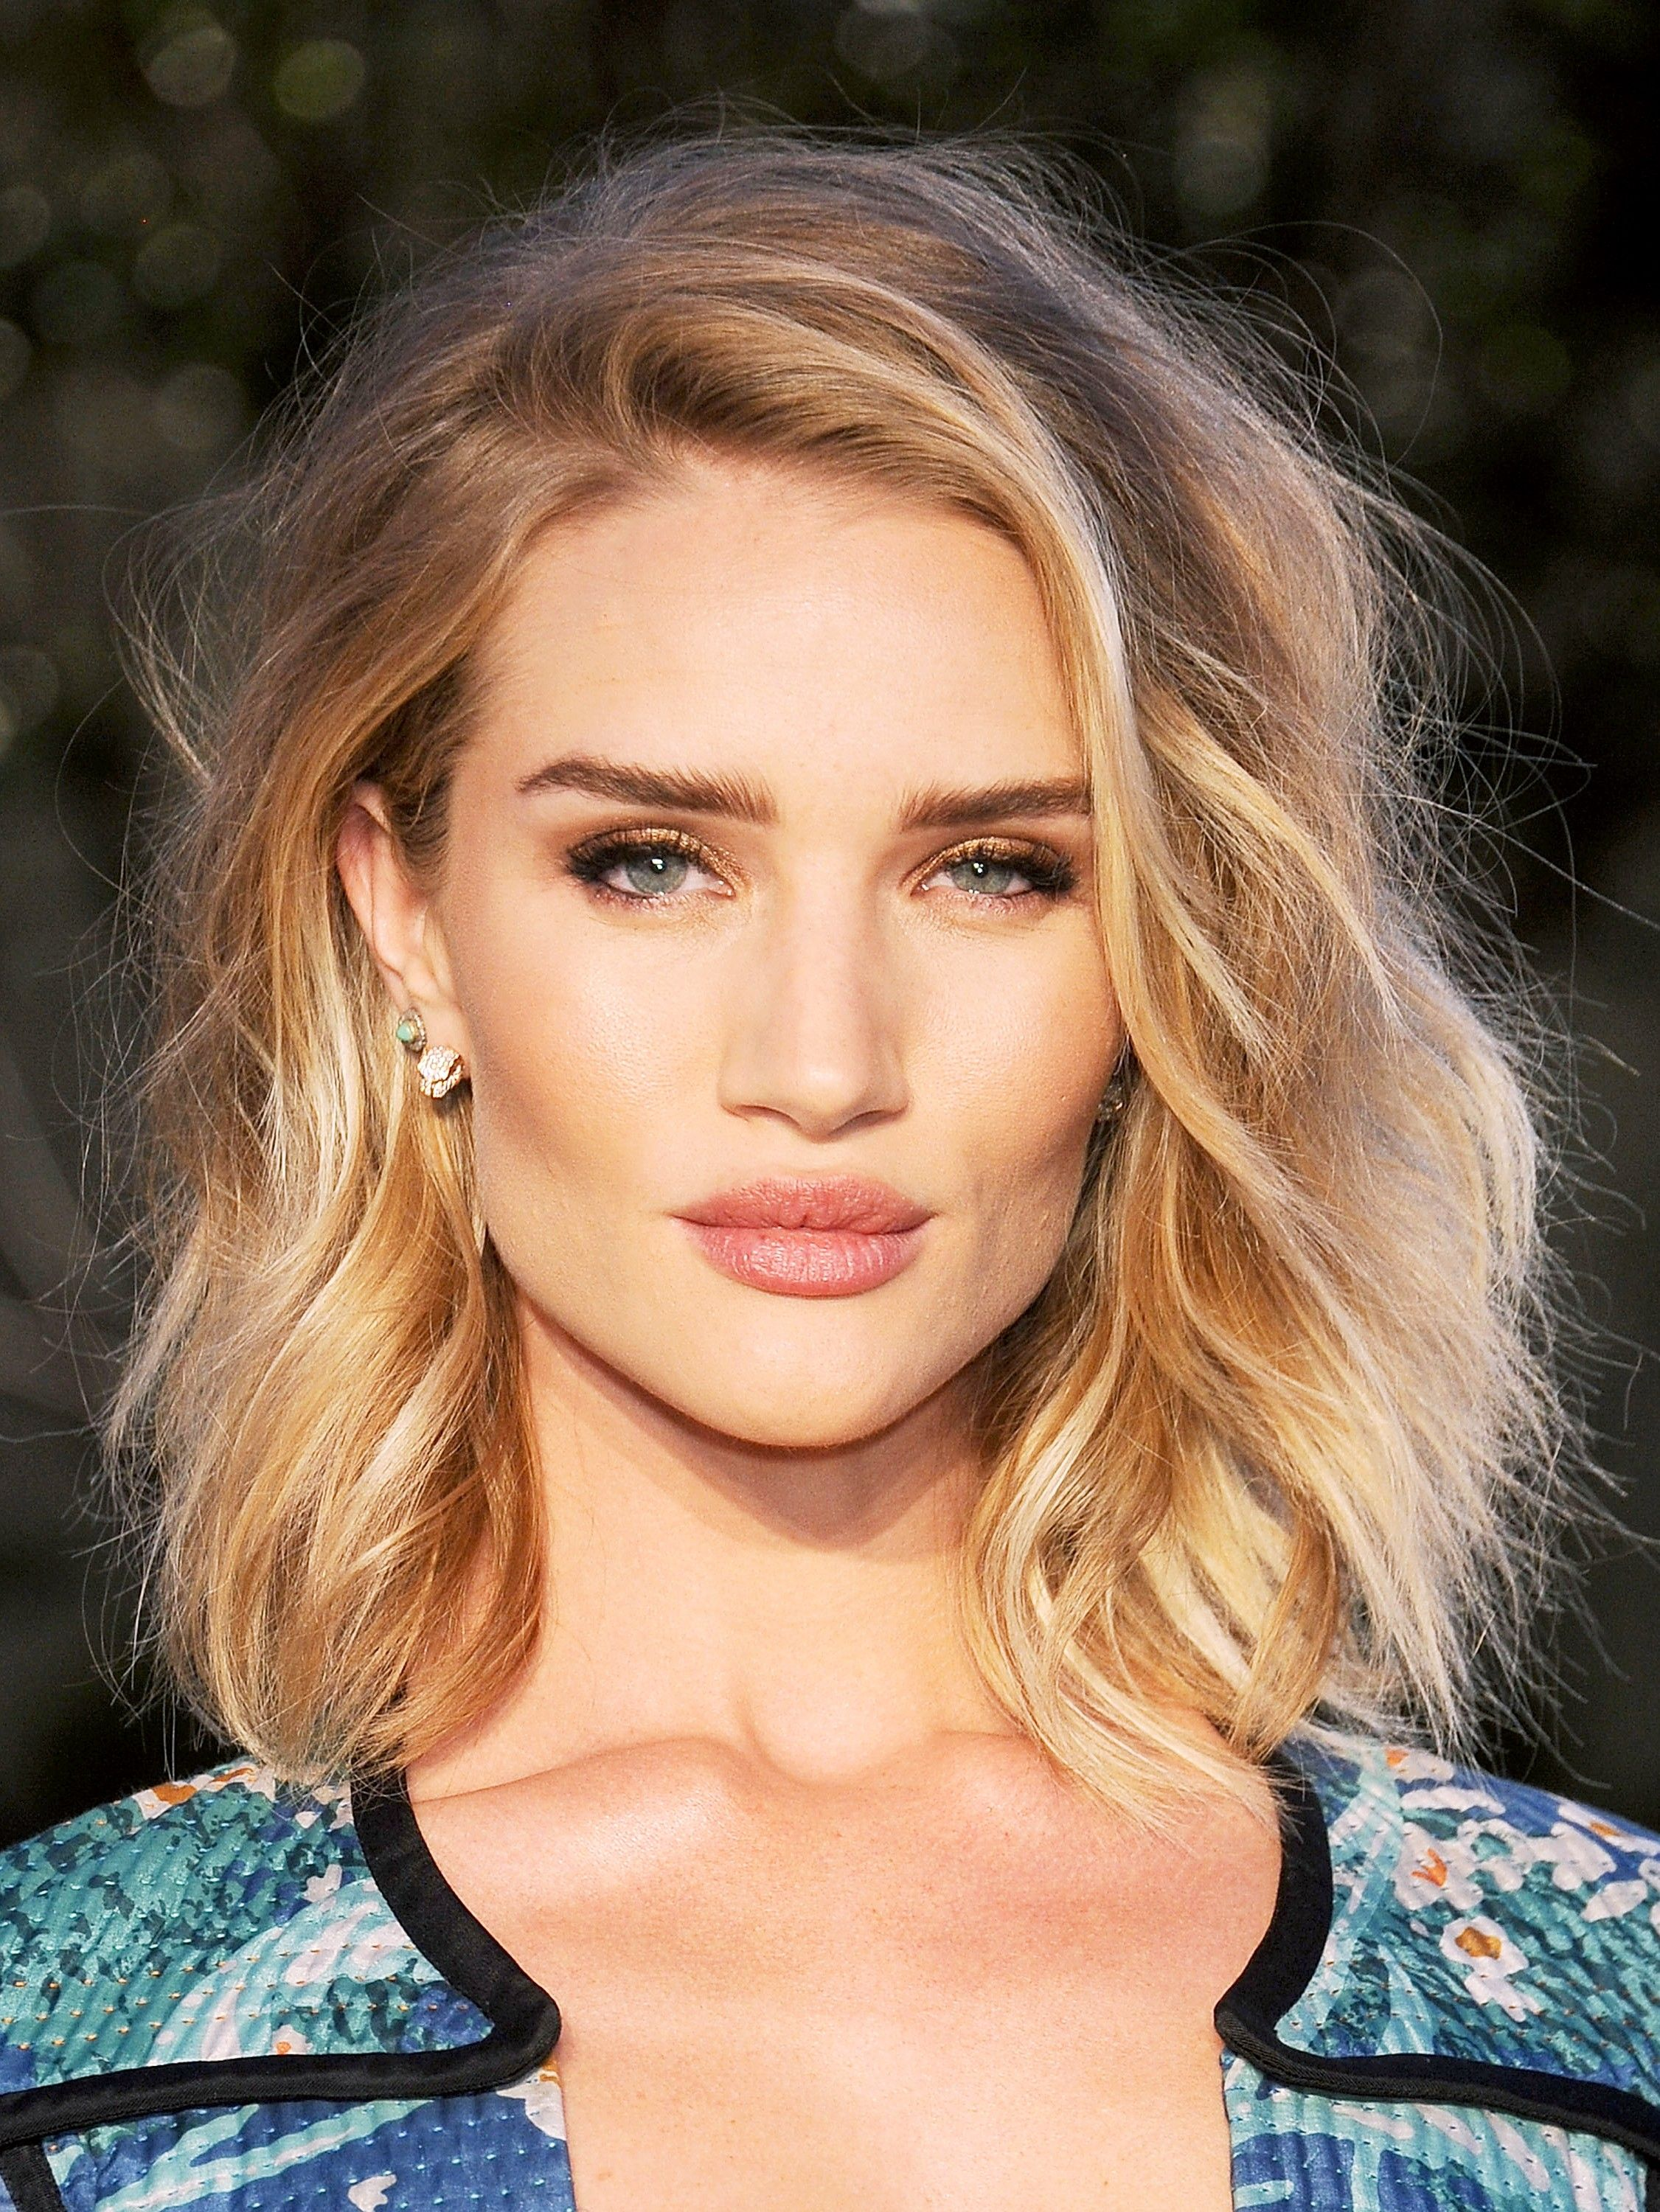 Watch Rosie Huntington-Whiteley Craft the Perfect Smoky Eye in 5 Seconds